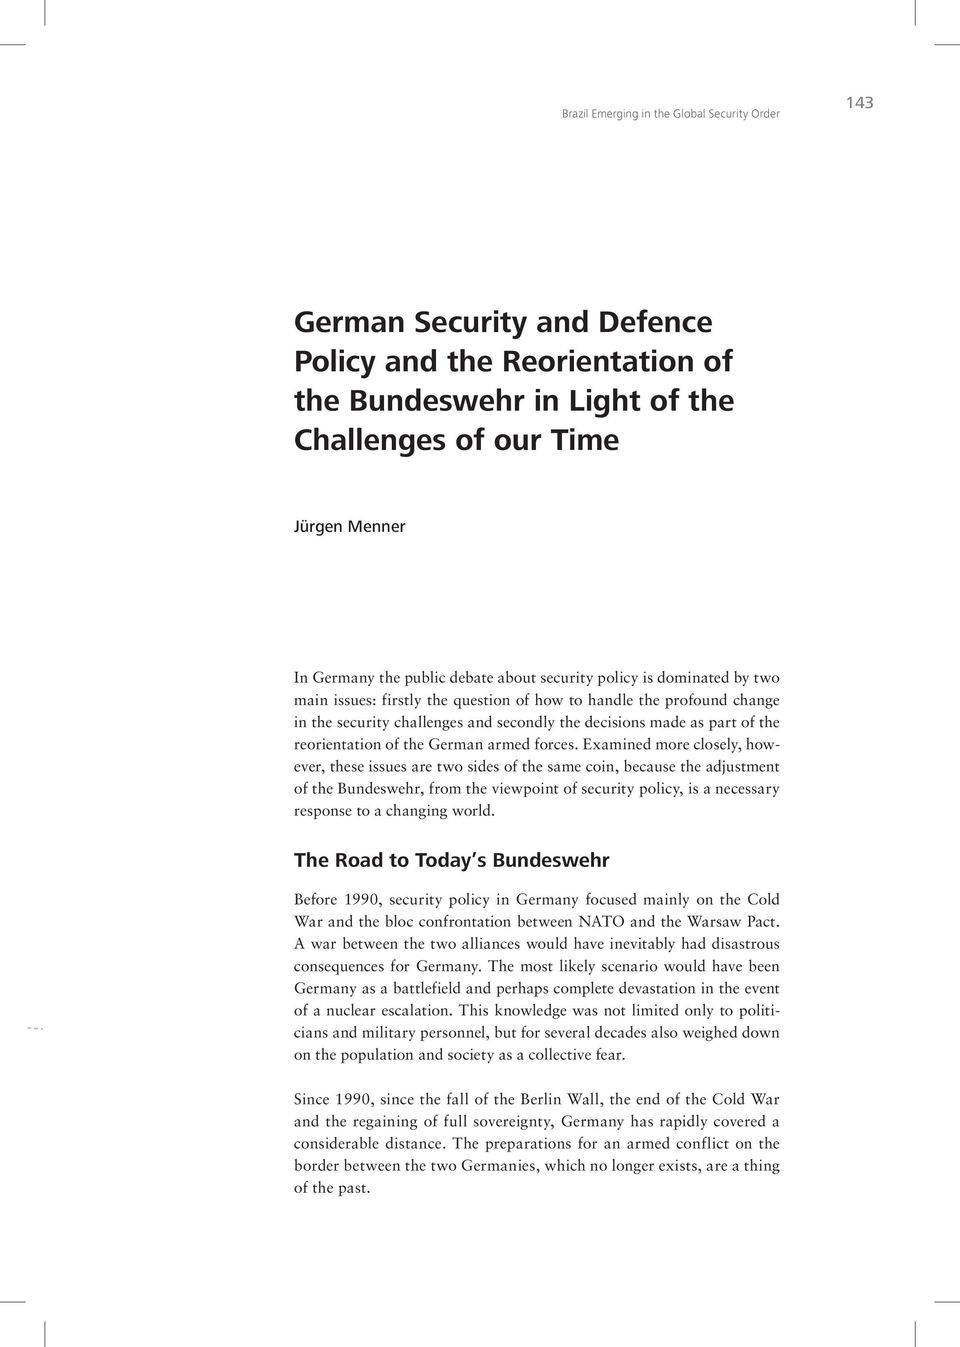 reorientation of the German armed forces.